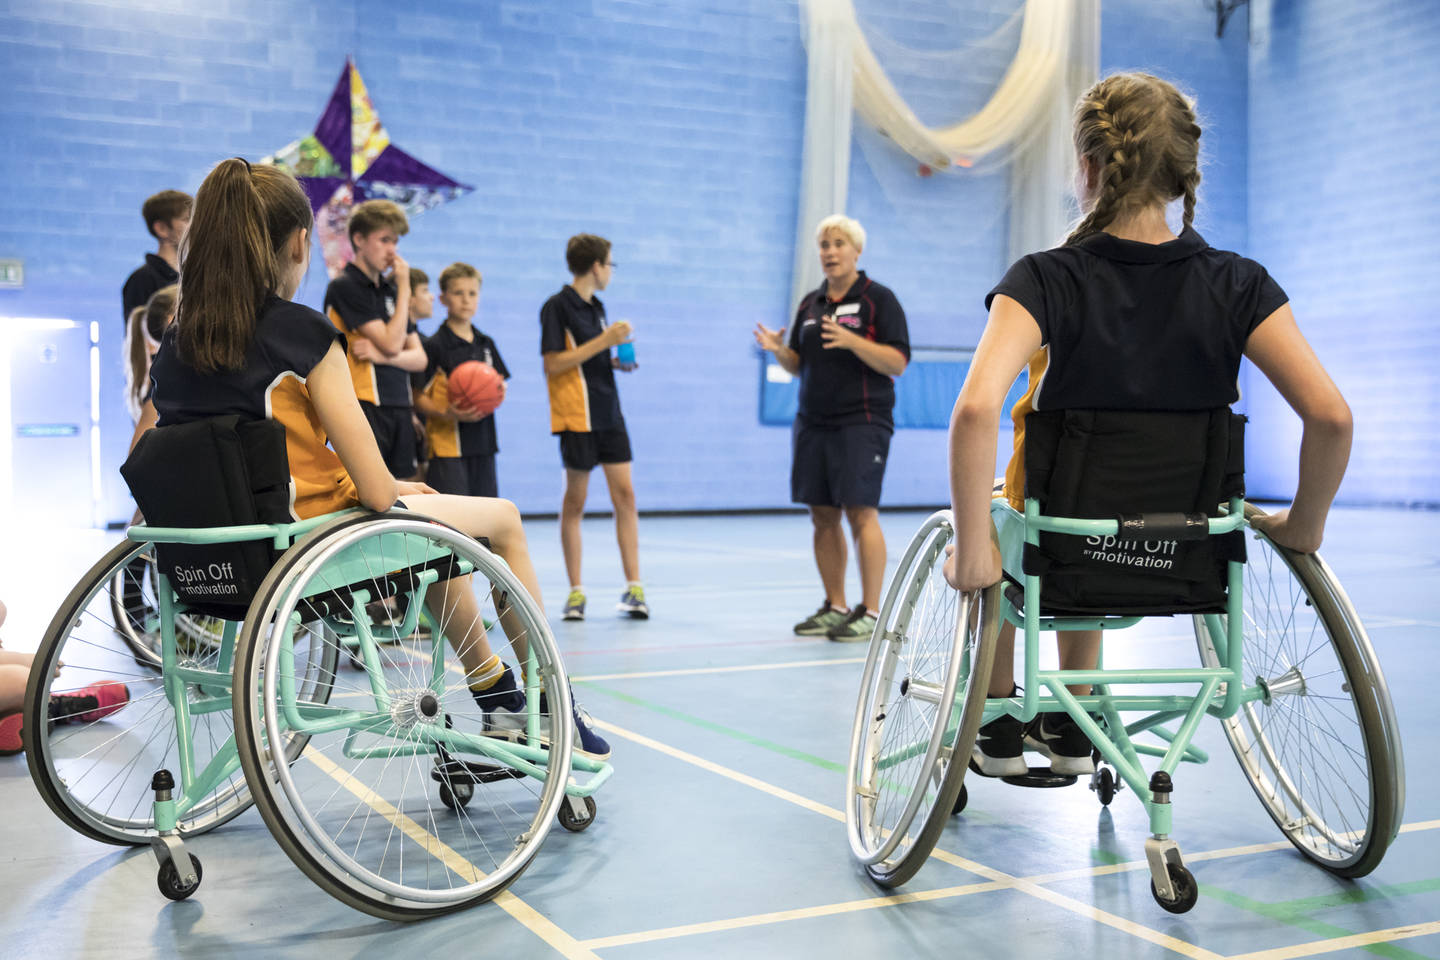 PE Teacher teaching an inclusive PE Lesson